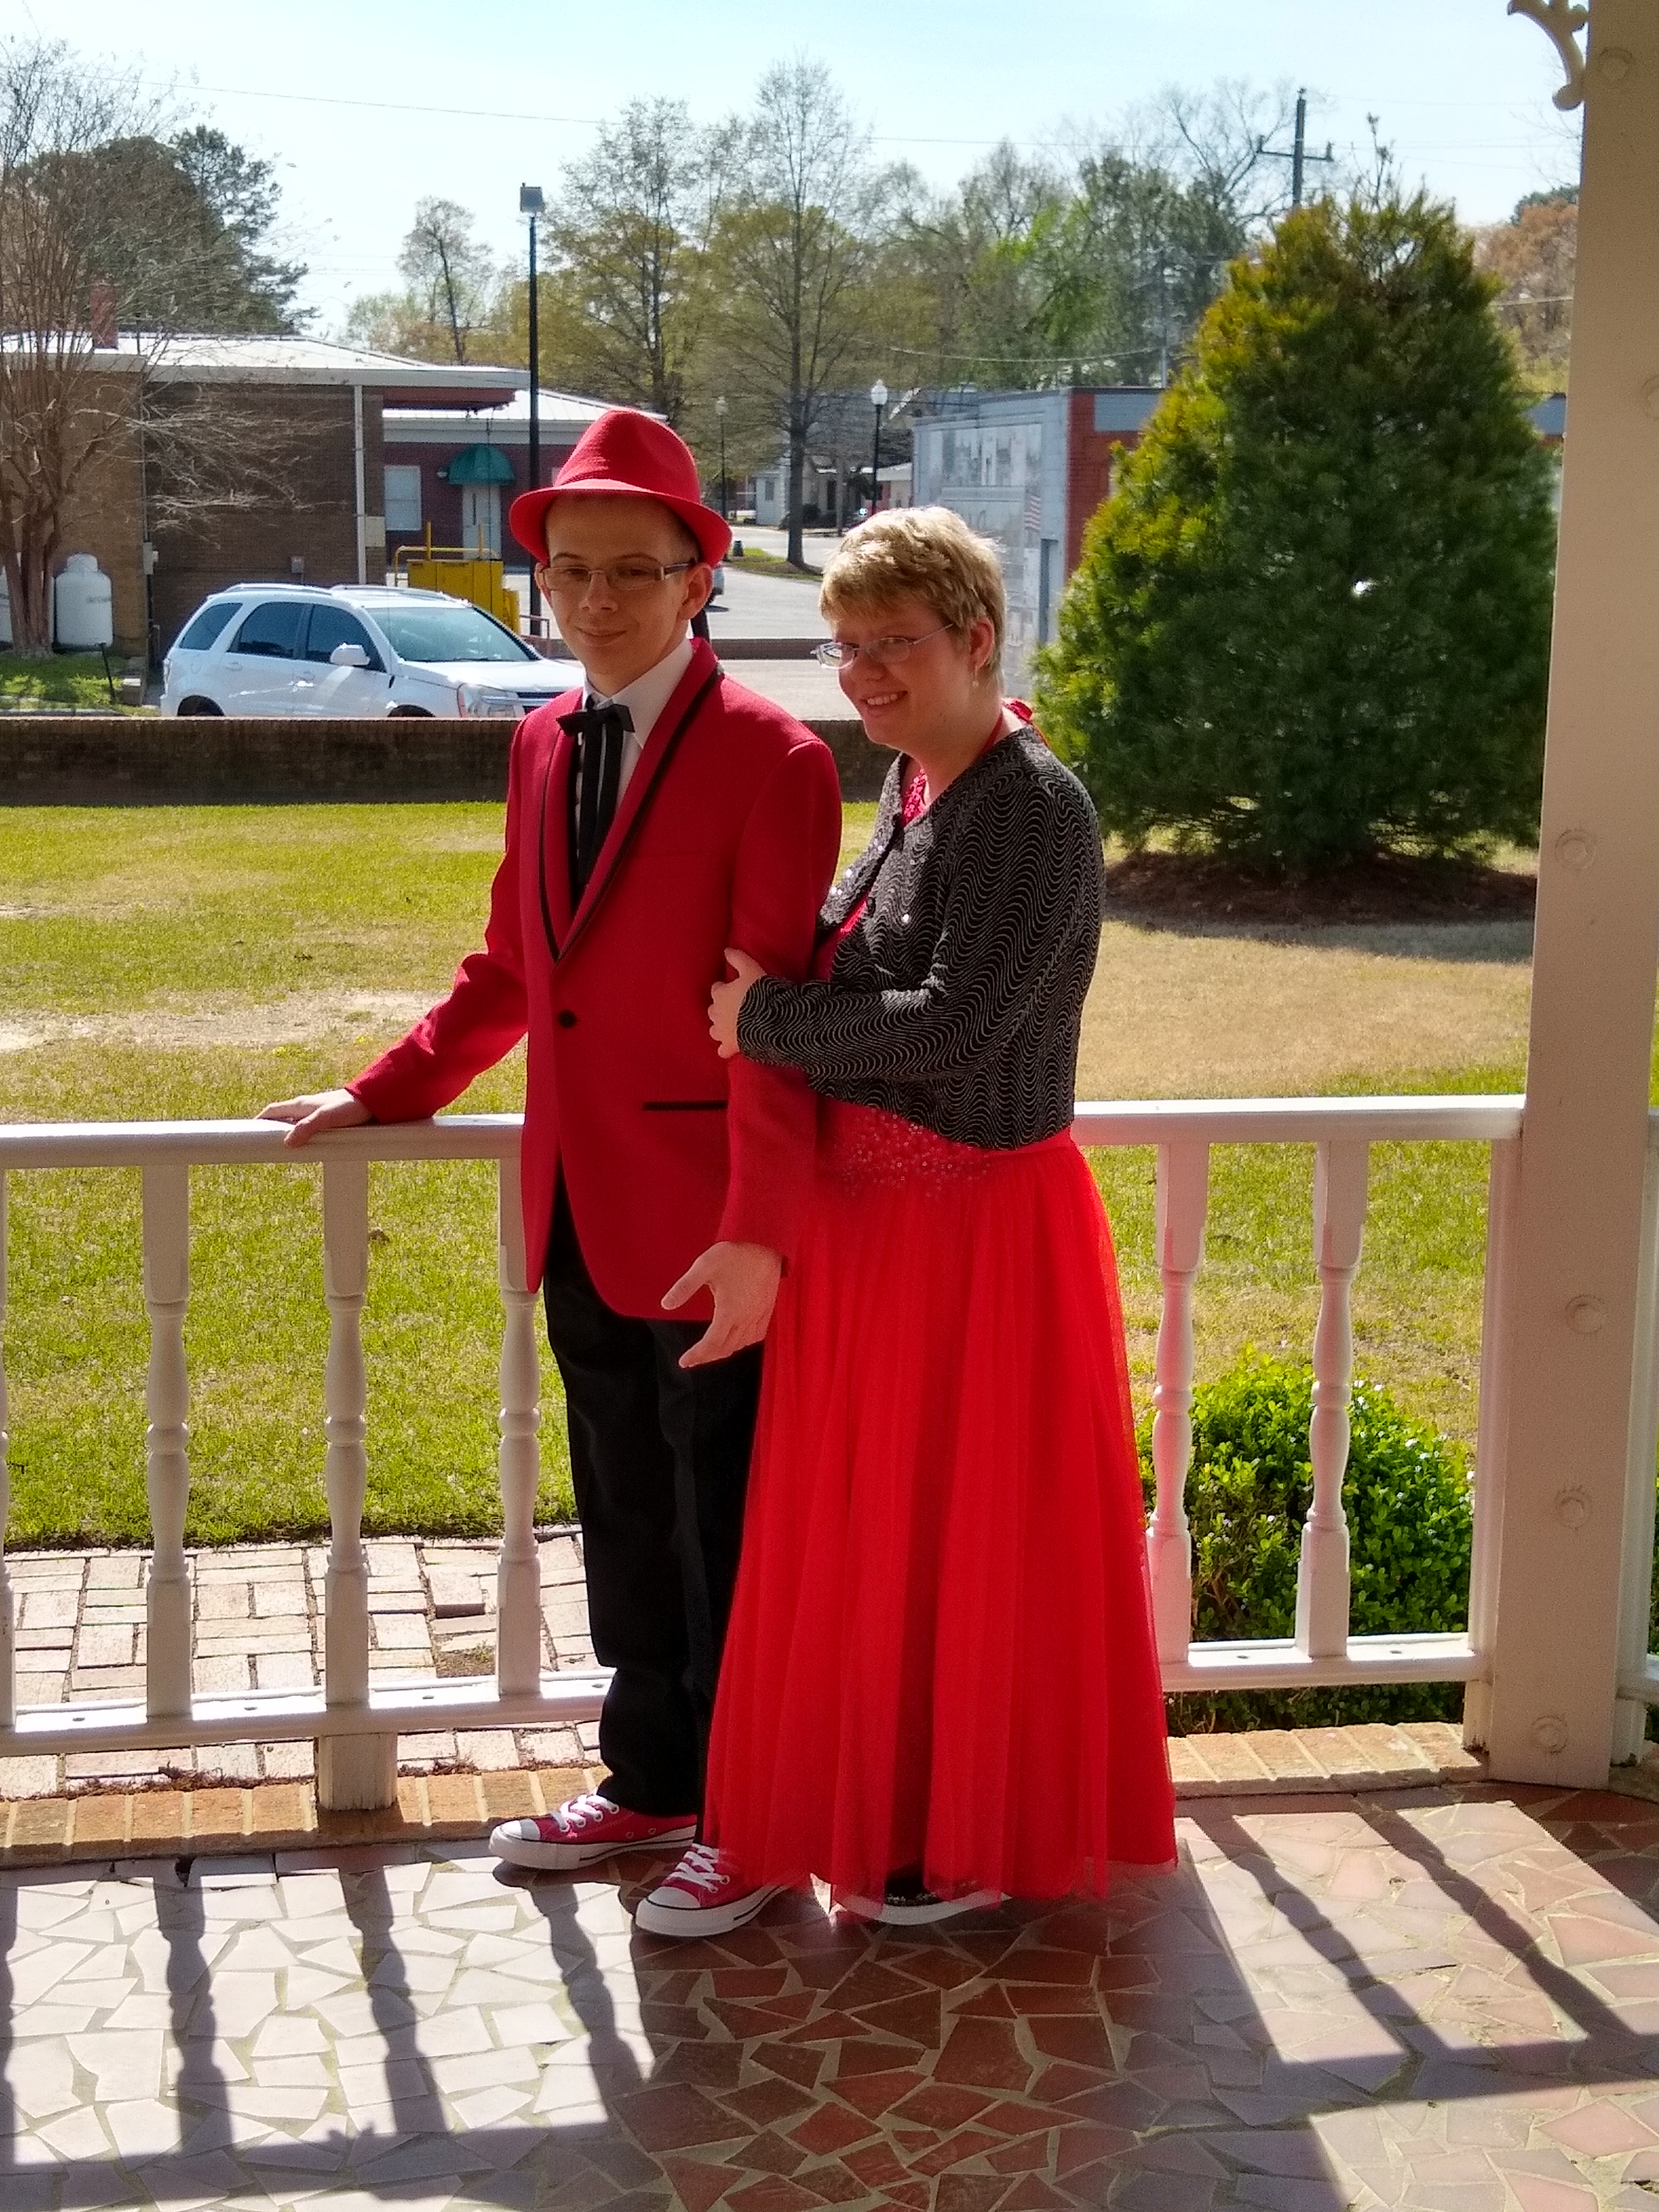 couple posing in matching red formal outfits to attend senior prom